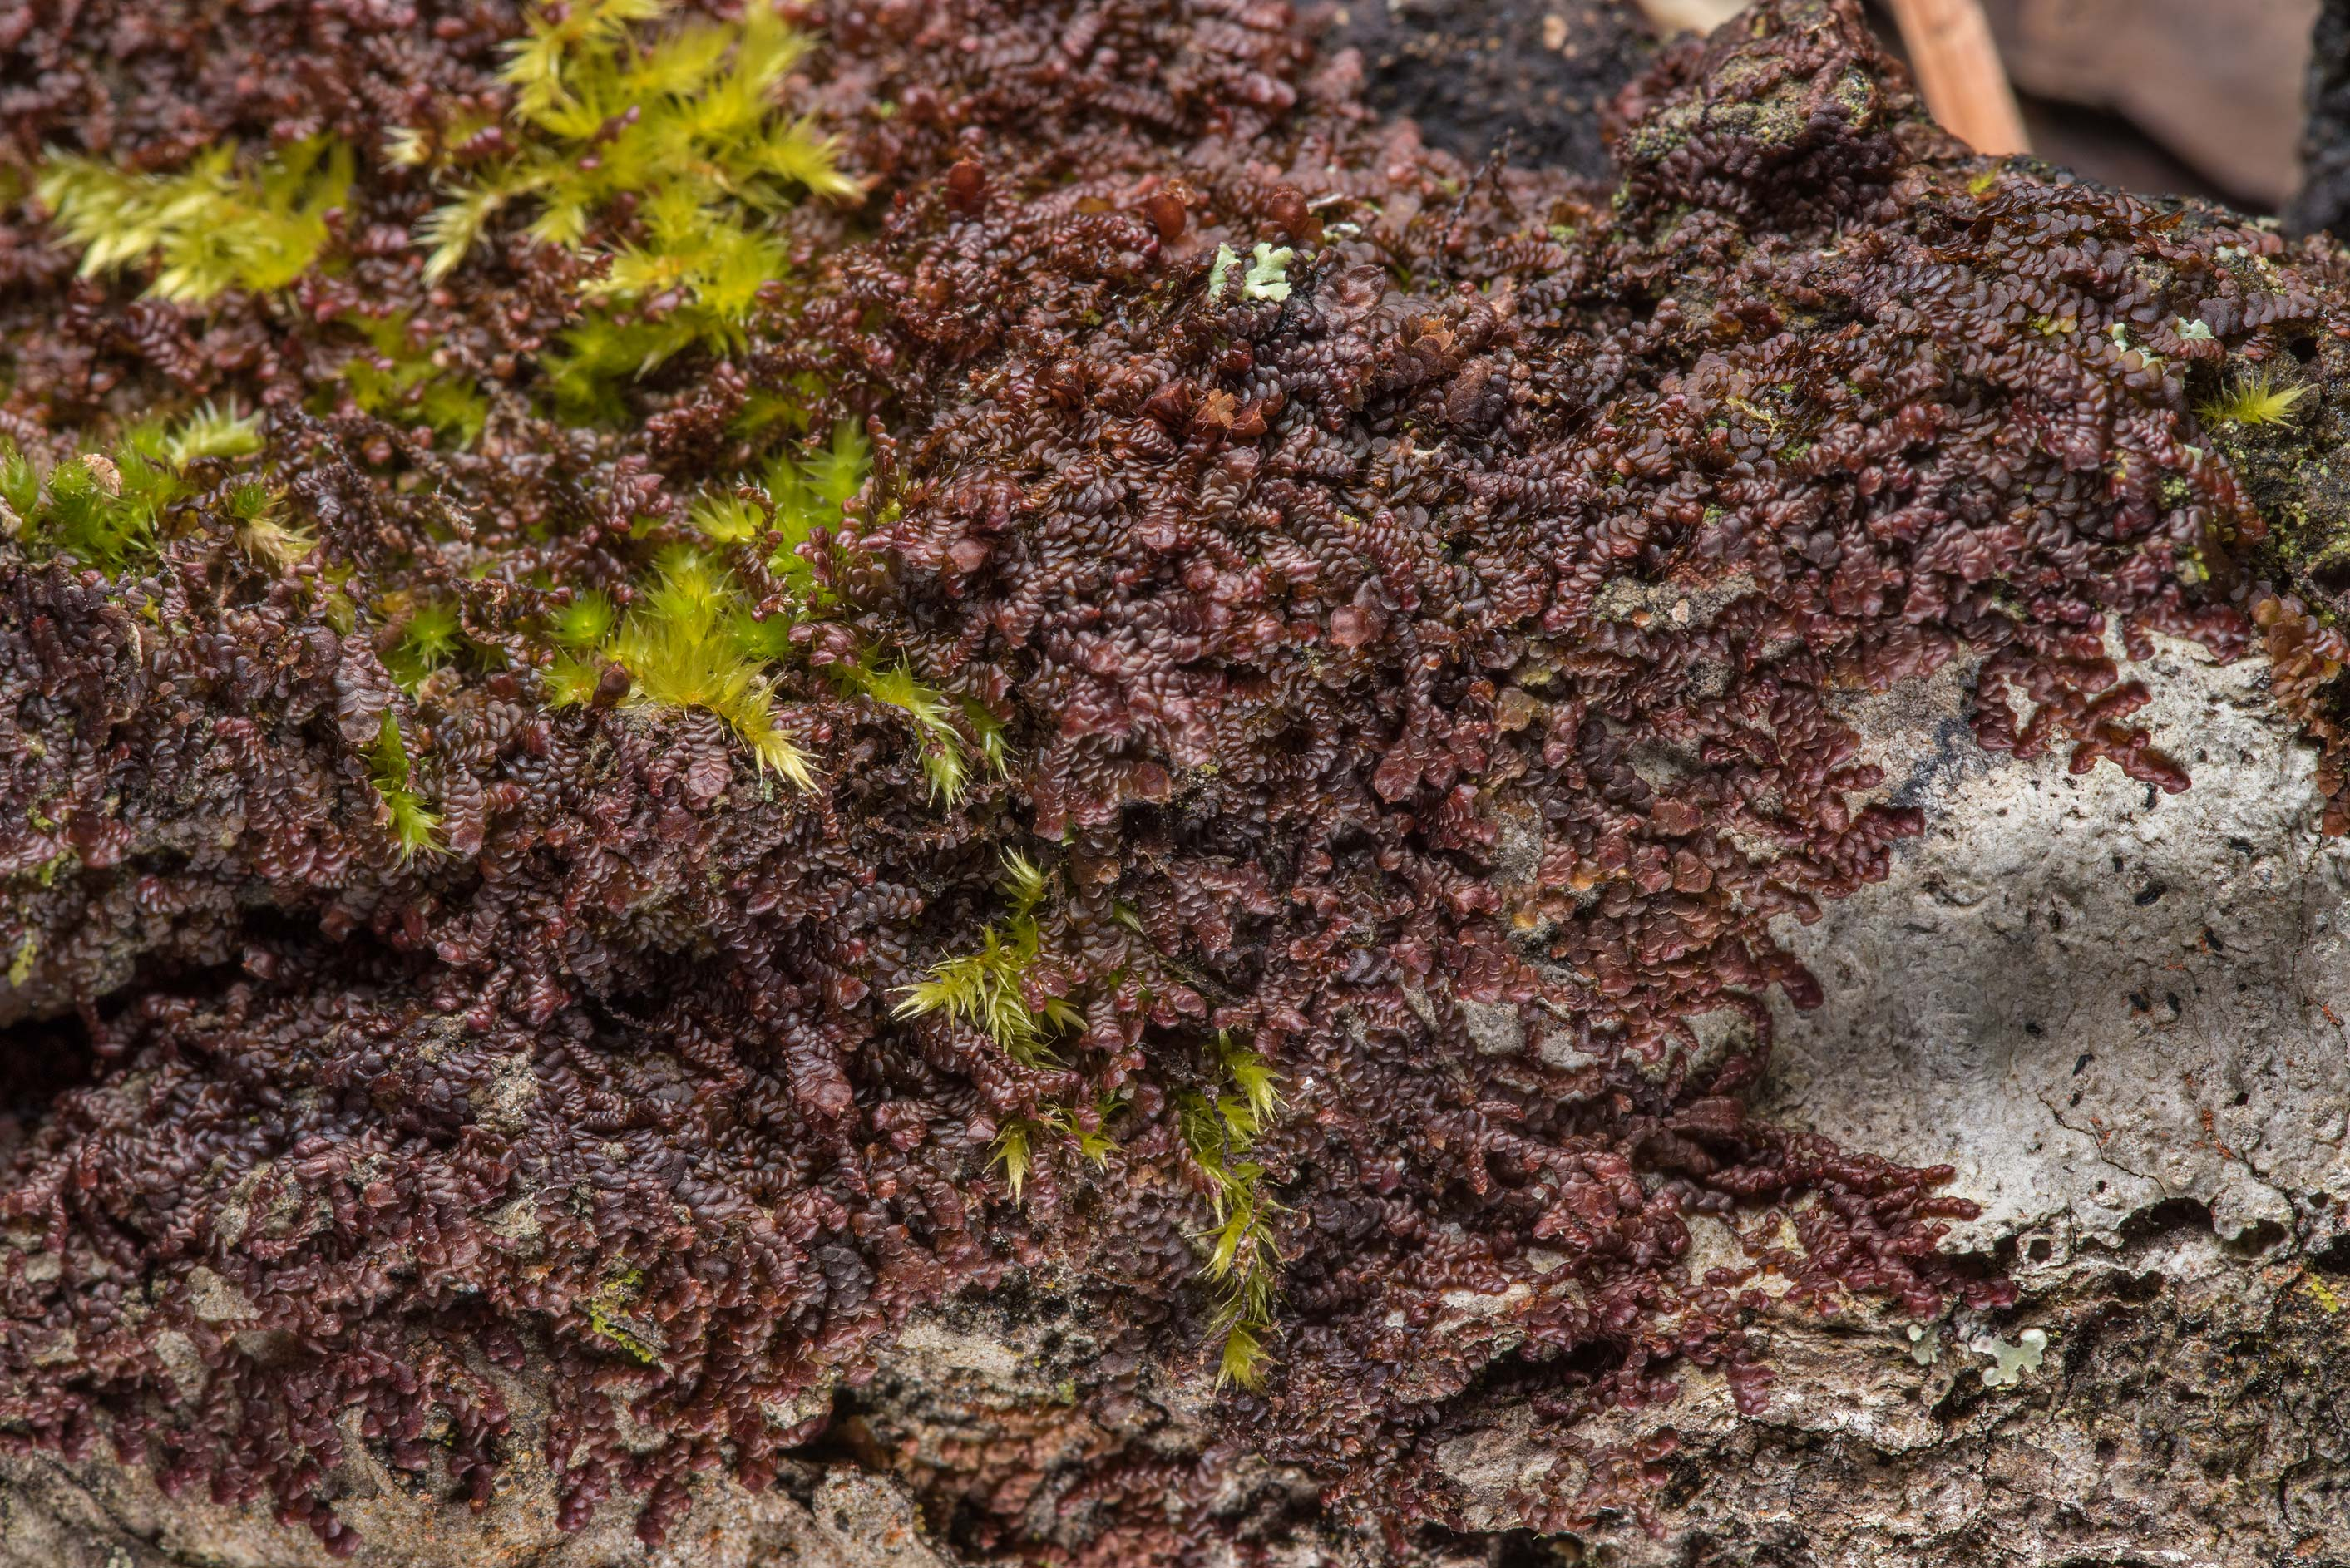 Small reddish-brown tree liverwort Frullania on...National Forest. Richards, Texas